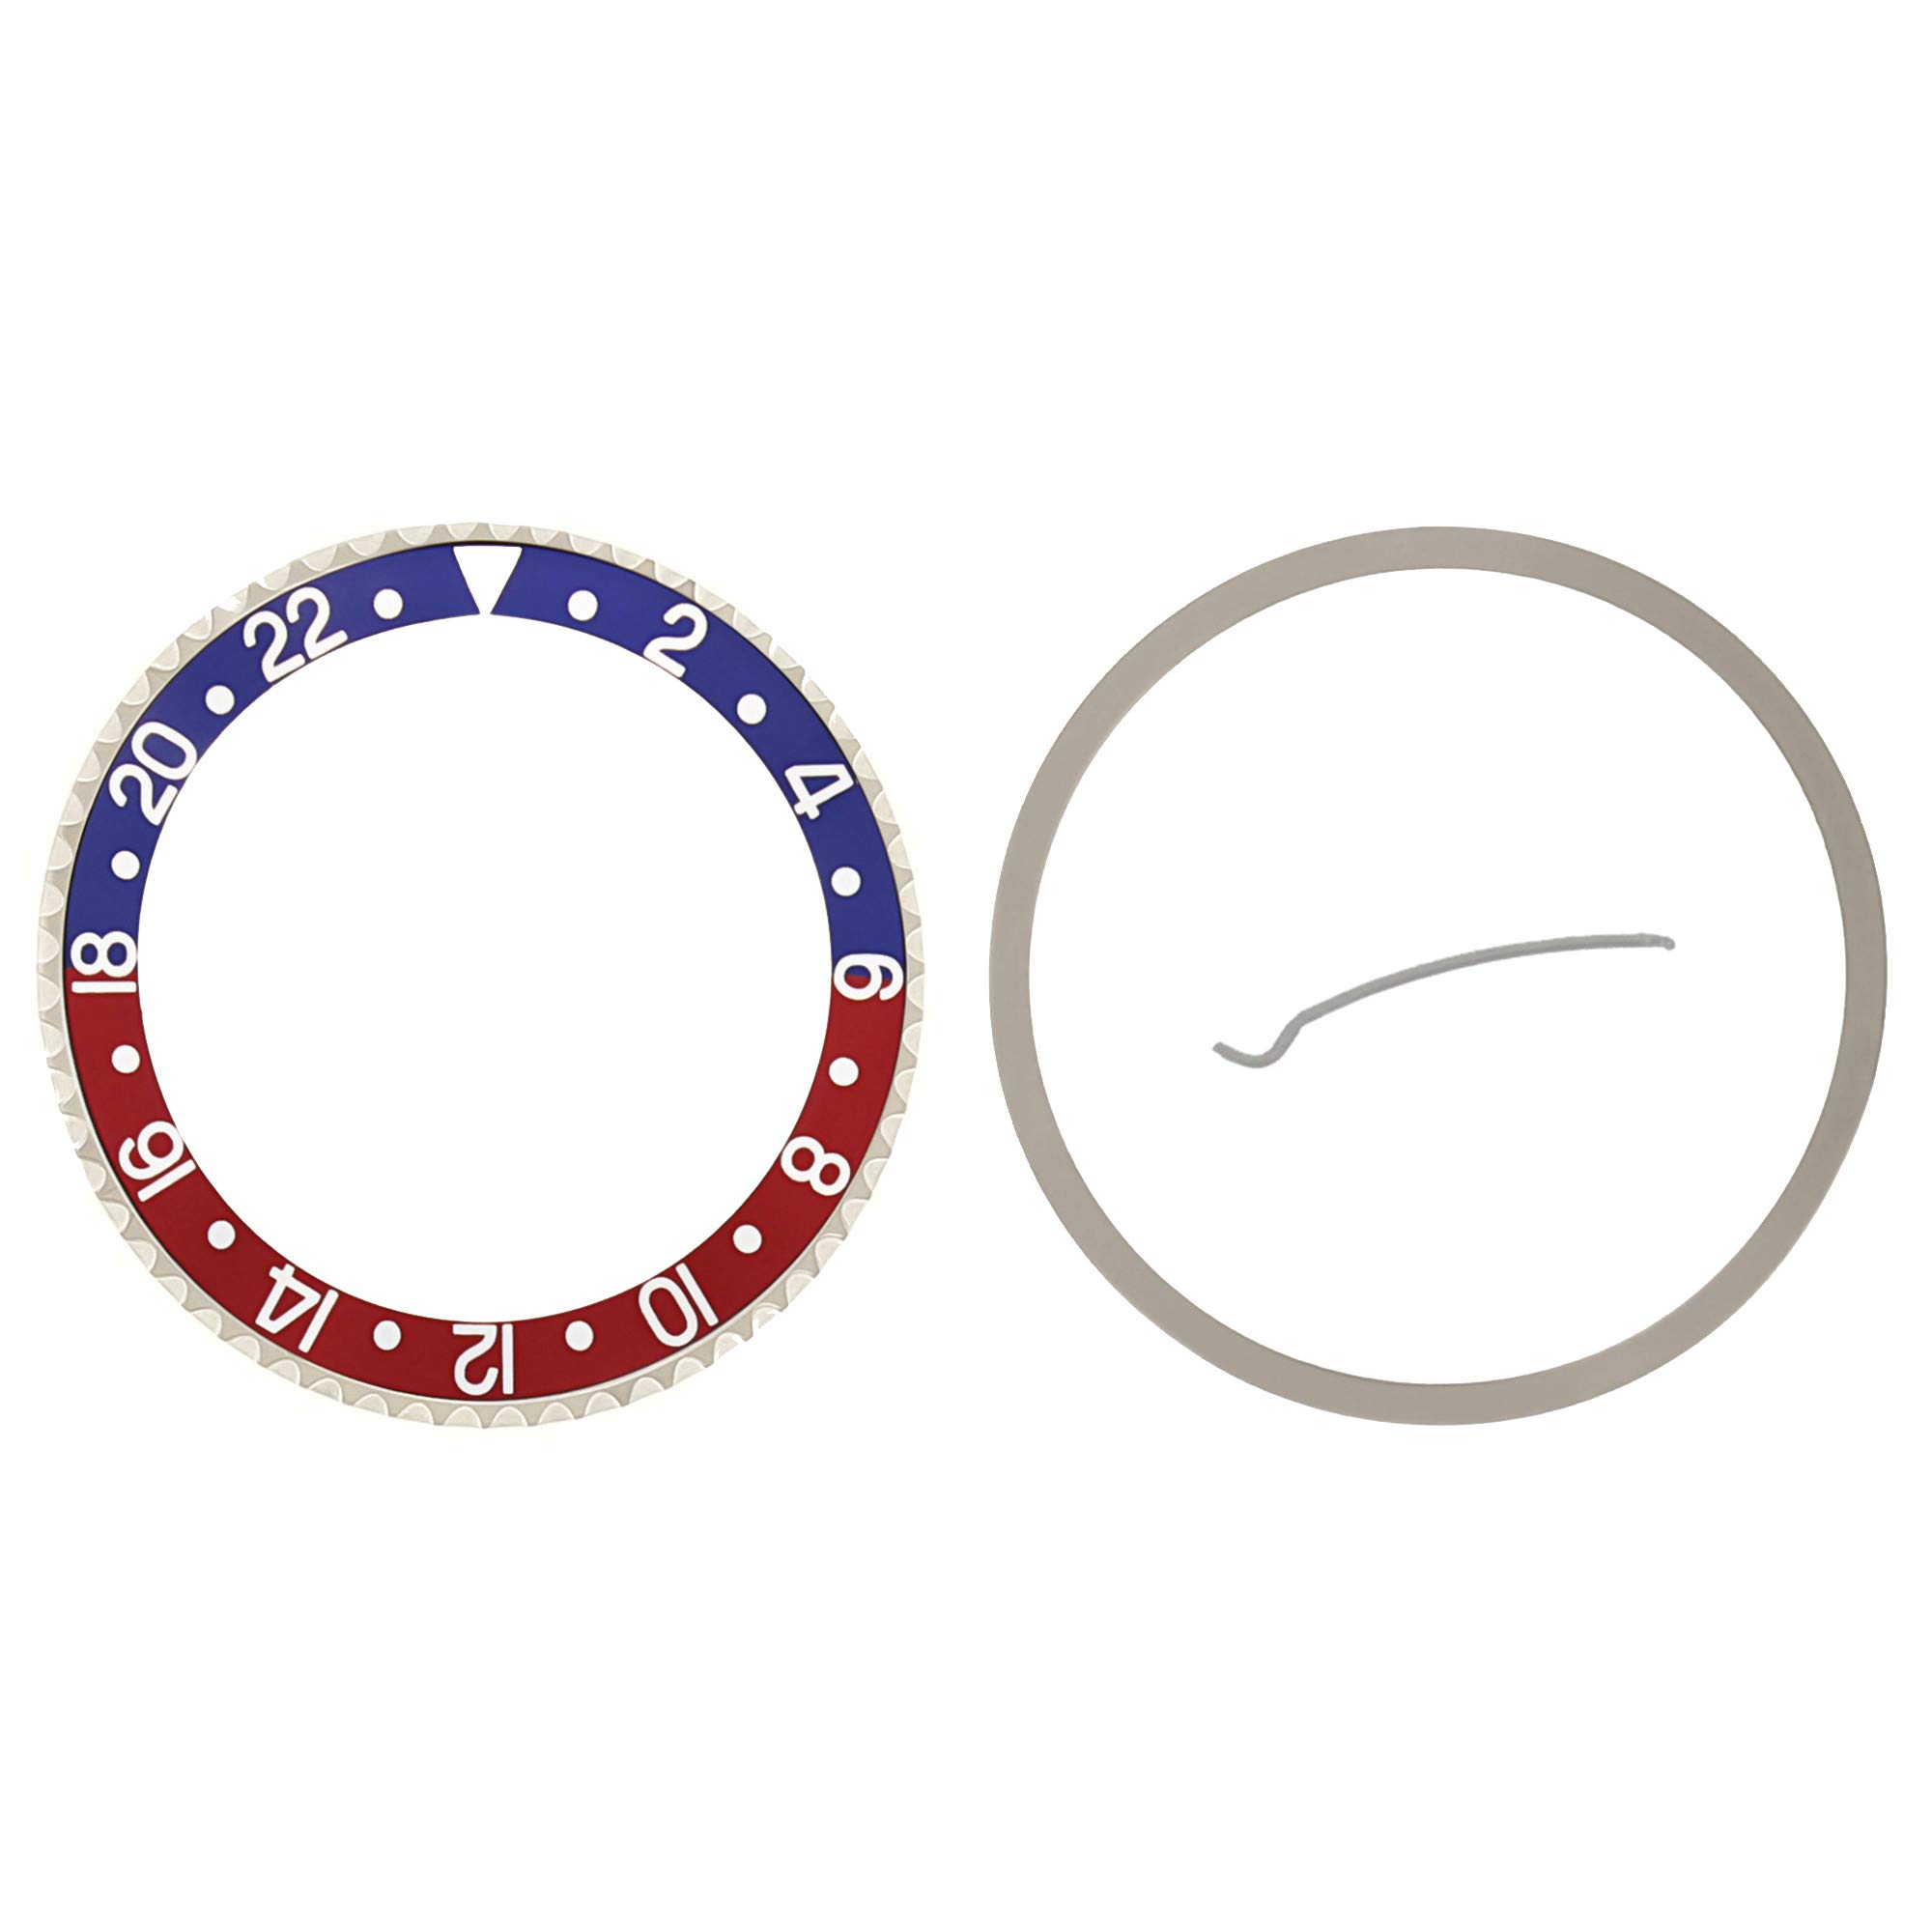 PEPSI BEZEL & INSERT FOR ROLEX GMT MASTER I, II BLUE/RED 16700 16710 SAPPHIRE by Ewatchparts